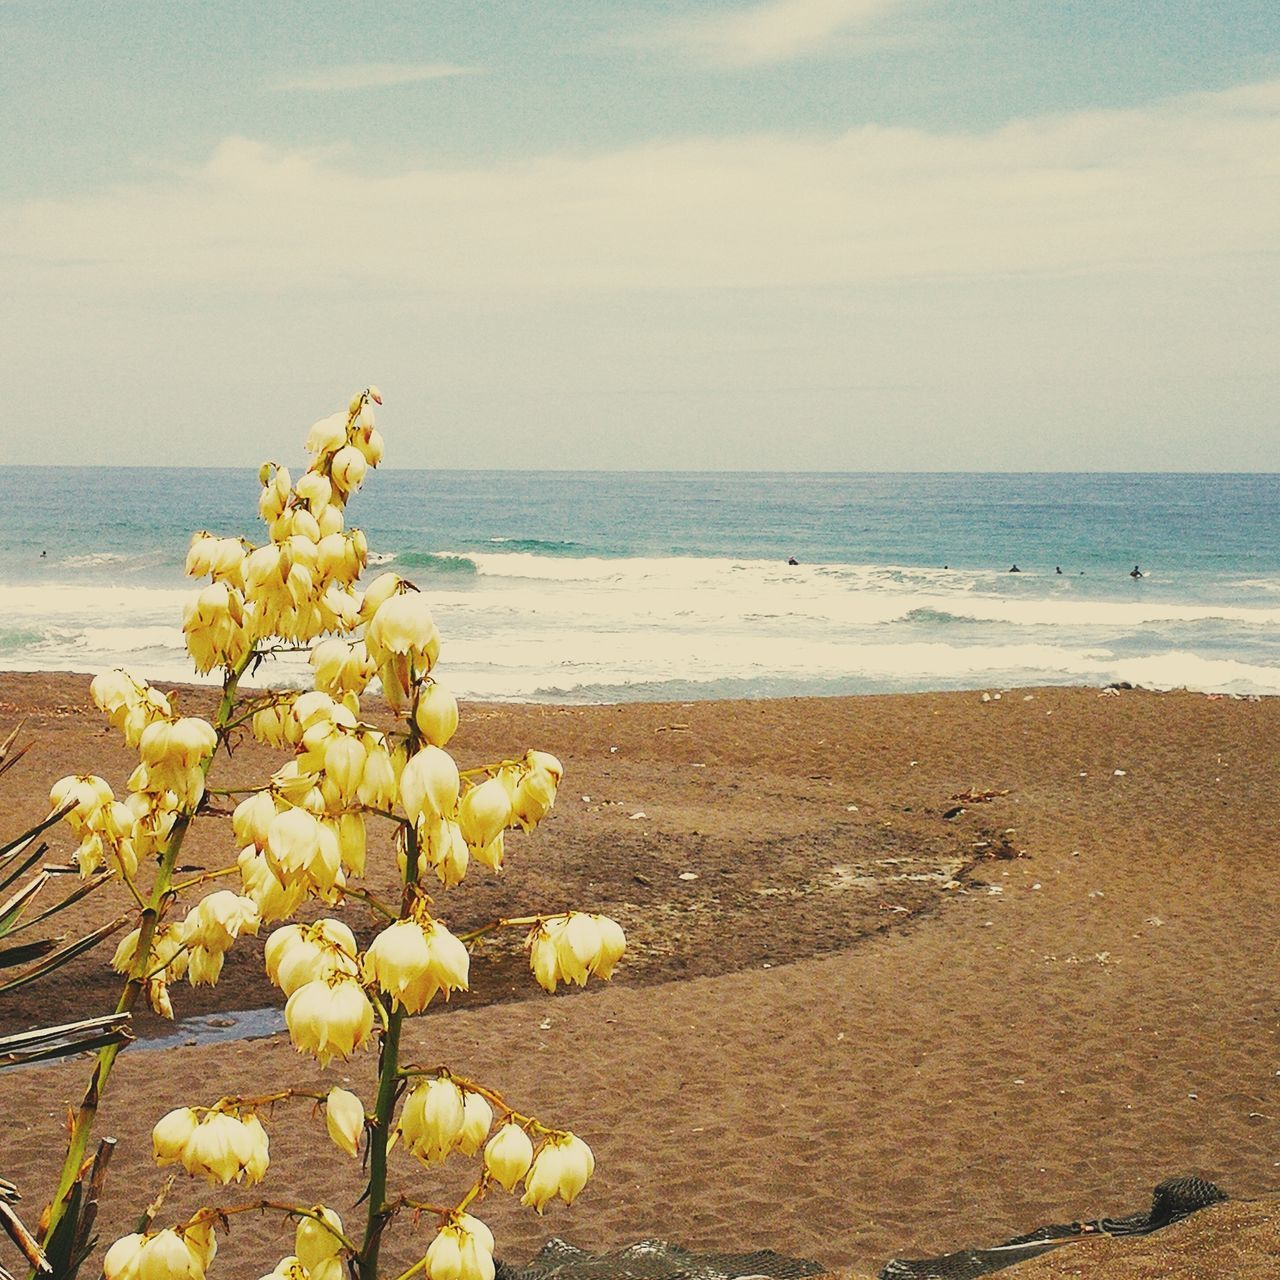 nature, beauty in nature, sea, water, flower, horizon over water, tranquility, beach, scenics, sky, tranquil scene, outdoors, no people, day, plant, growth, fragility, sand, yellow, freshness